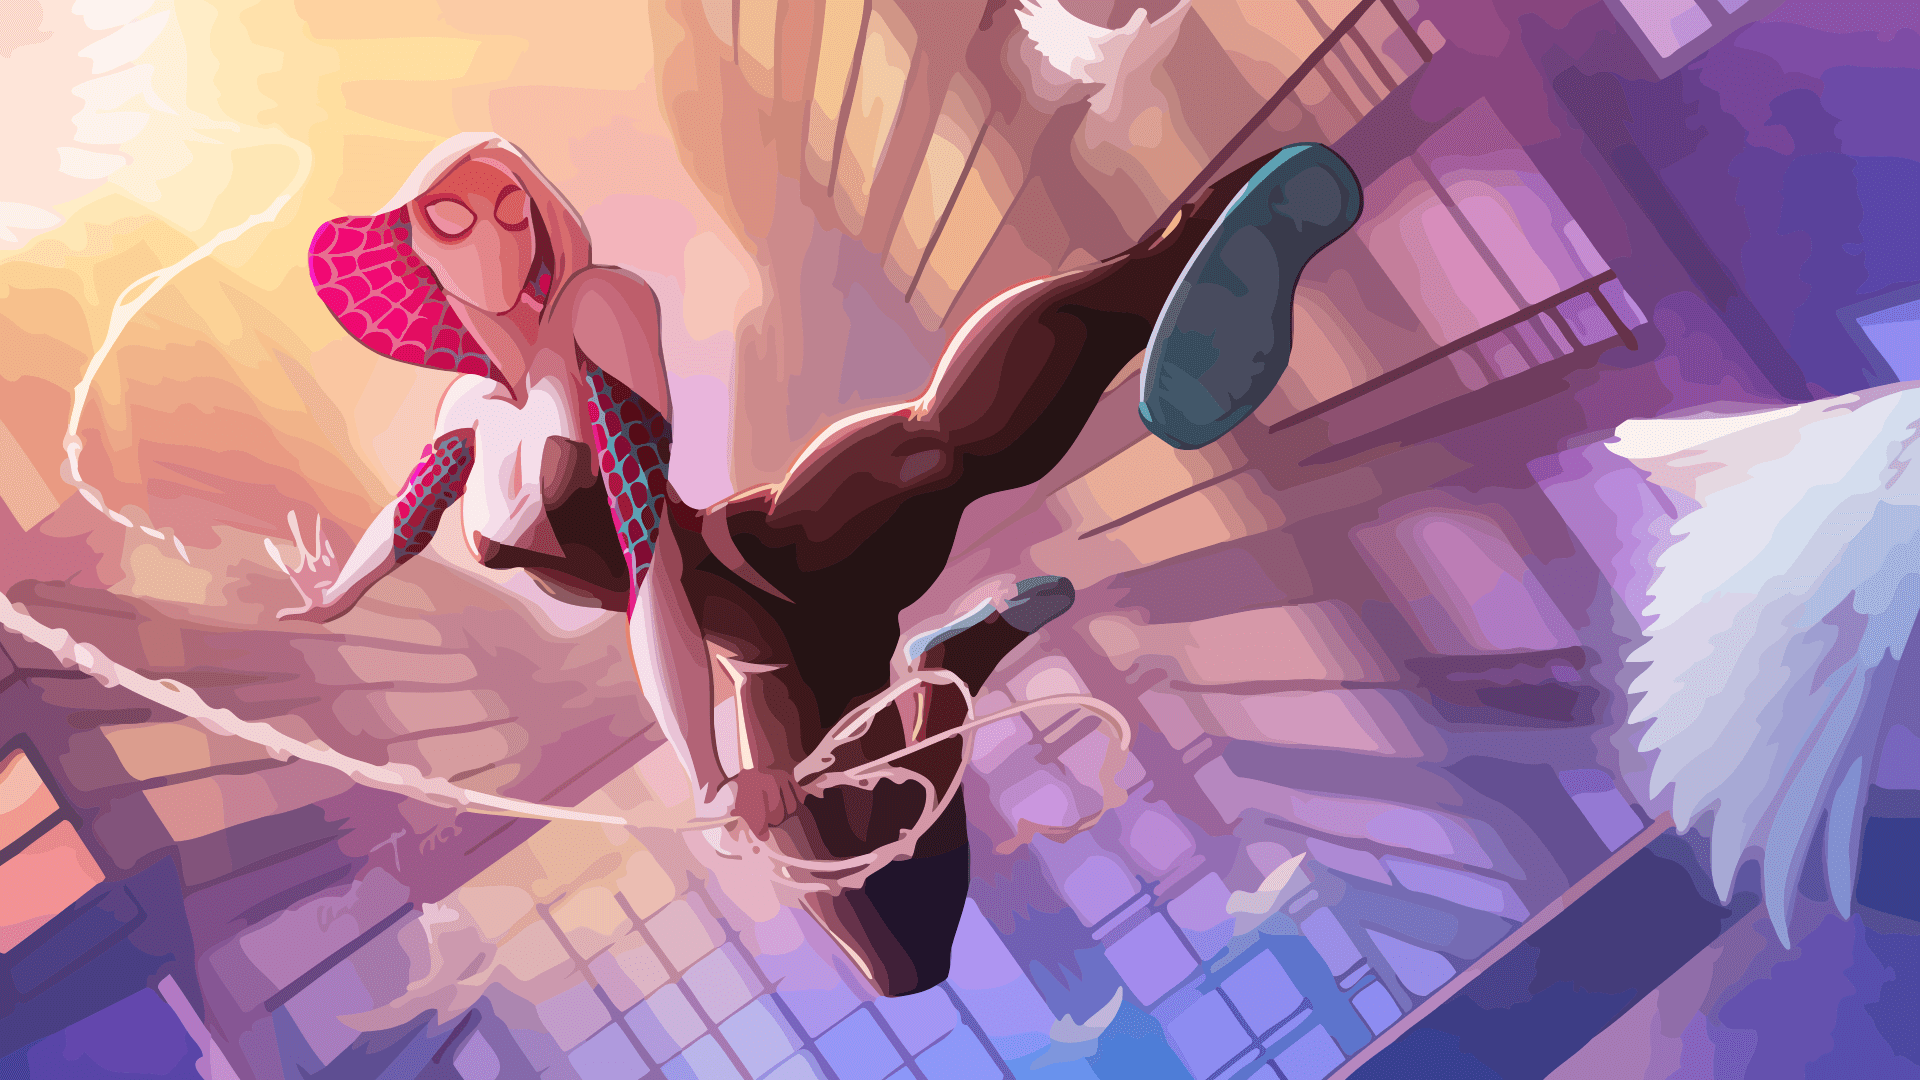 Anime Spider Girl Wallpaper